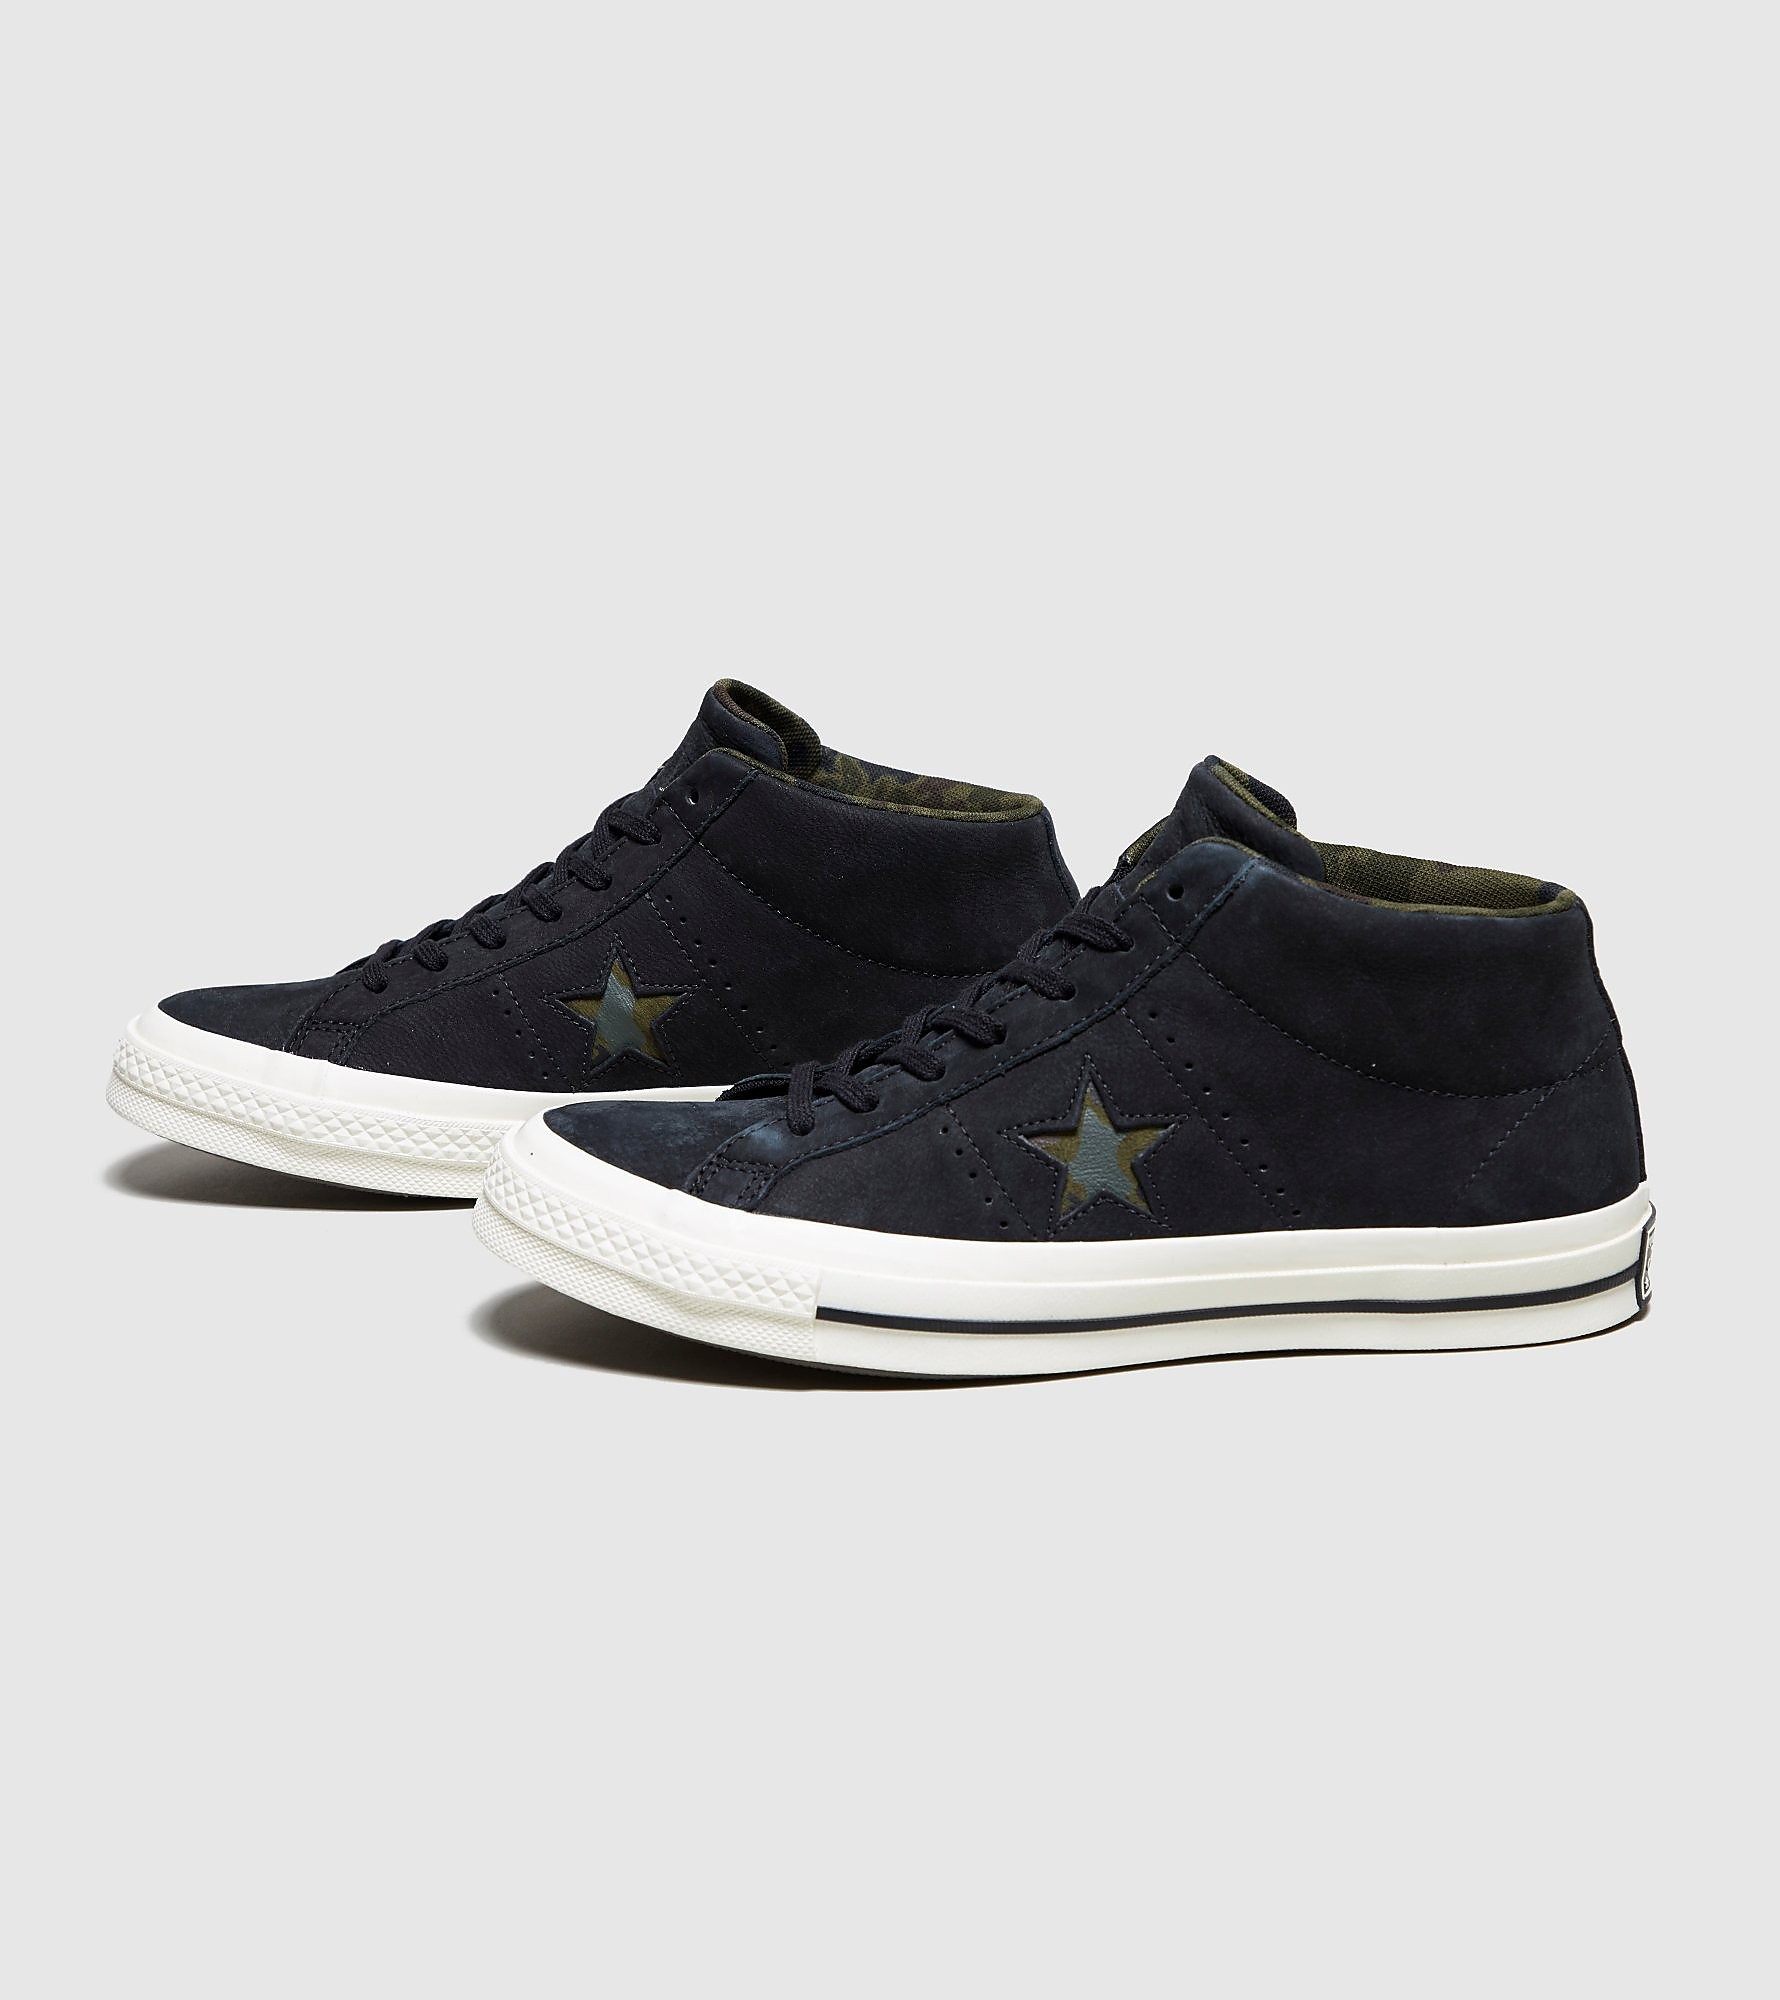 Converse One Star Mid Camo